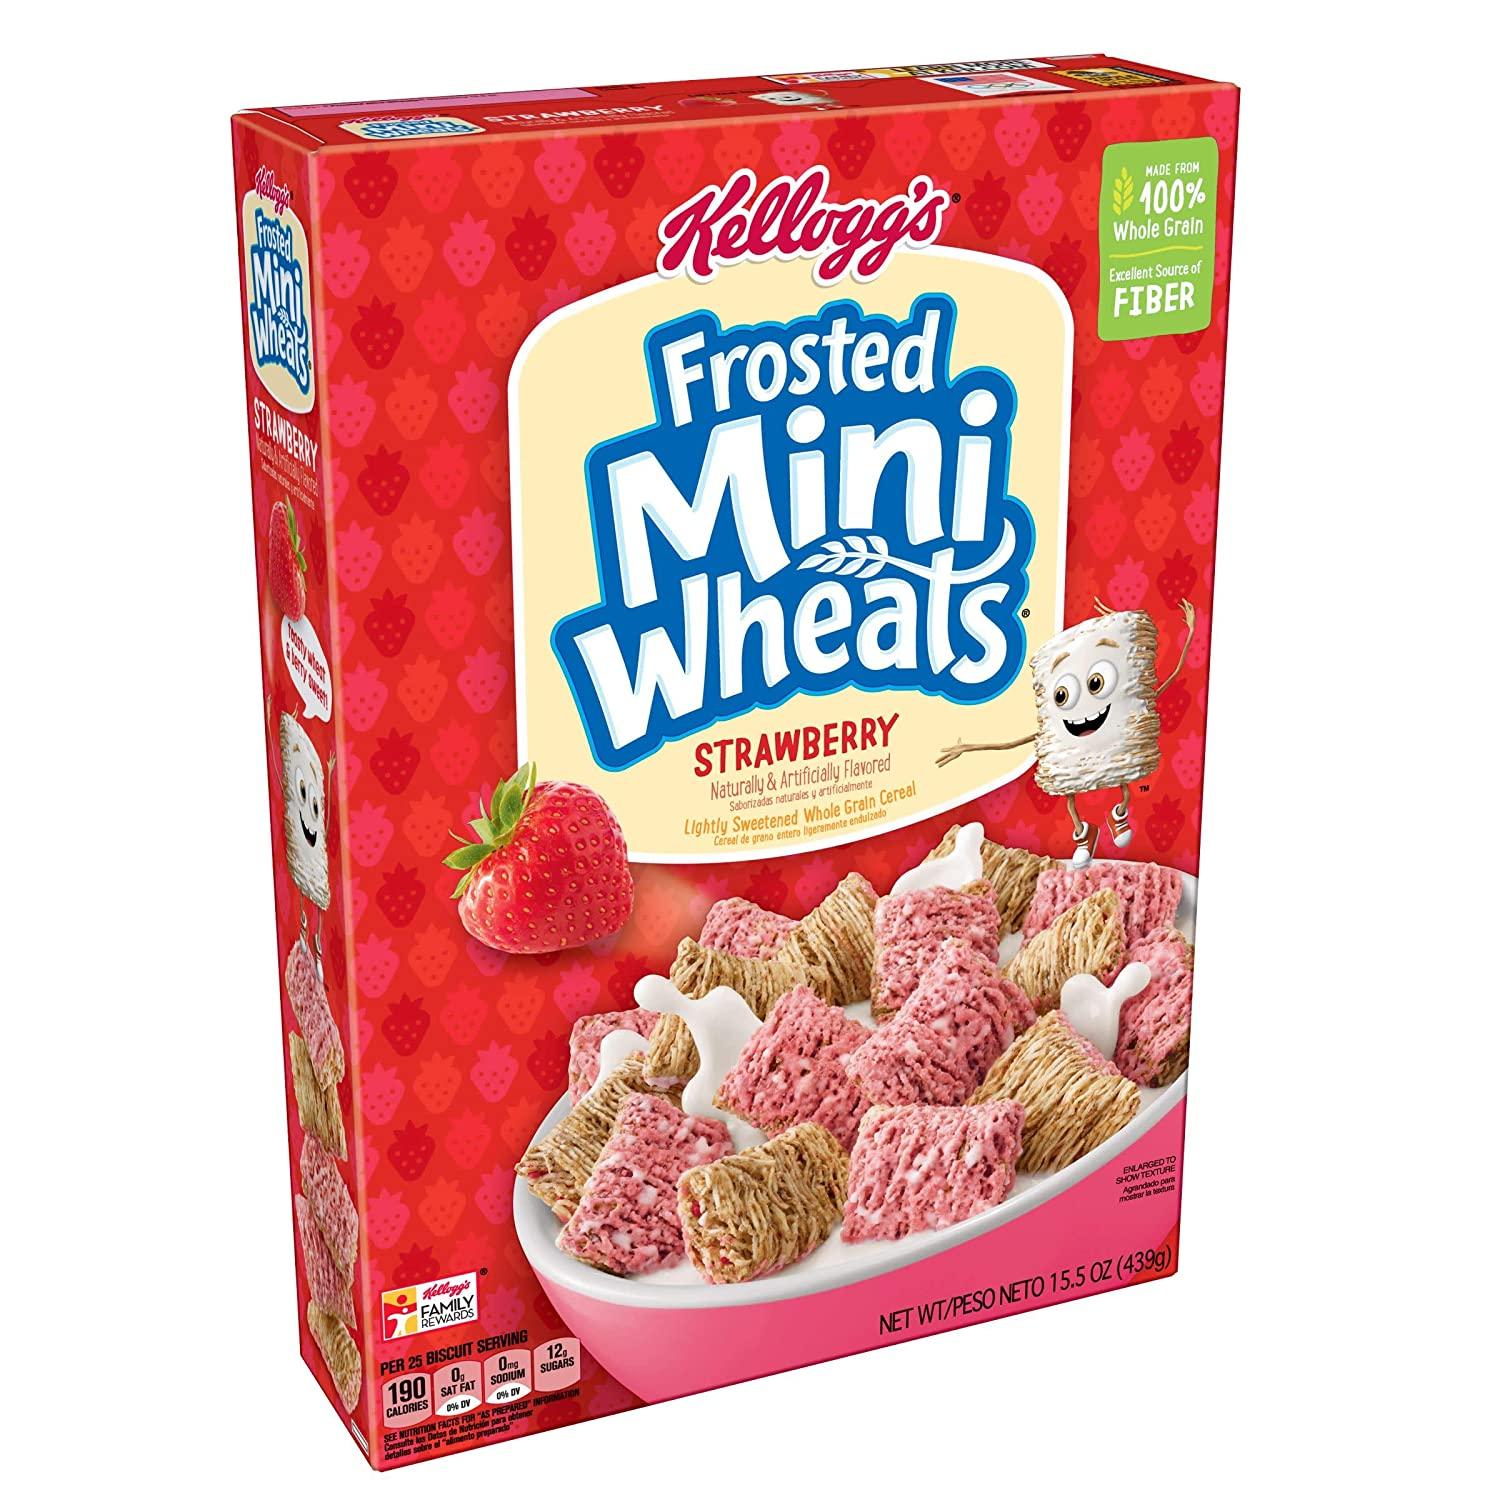 Amazon.com: Kelloggs Breakfast Cereal, Frosted Mini-Wheats, Strawberry, Low Fat, Excellent Source of Fiber, 15.5 oz Box: Prime Pantry